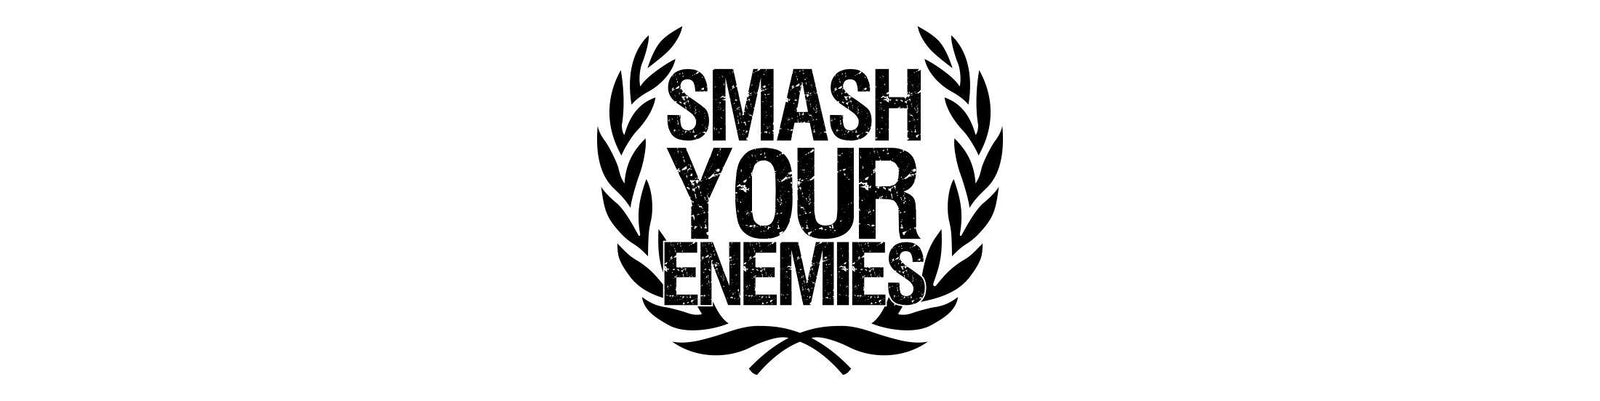 Smash Your Enemies